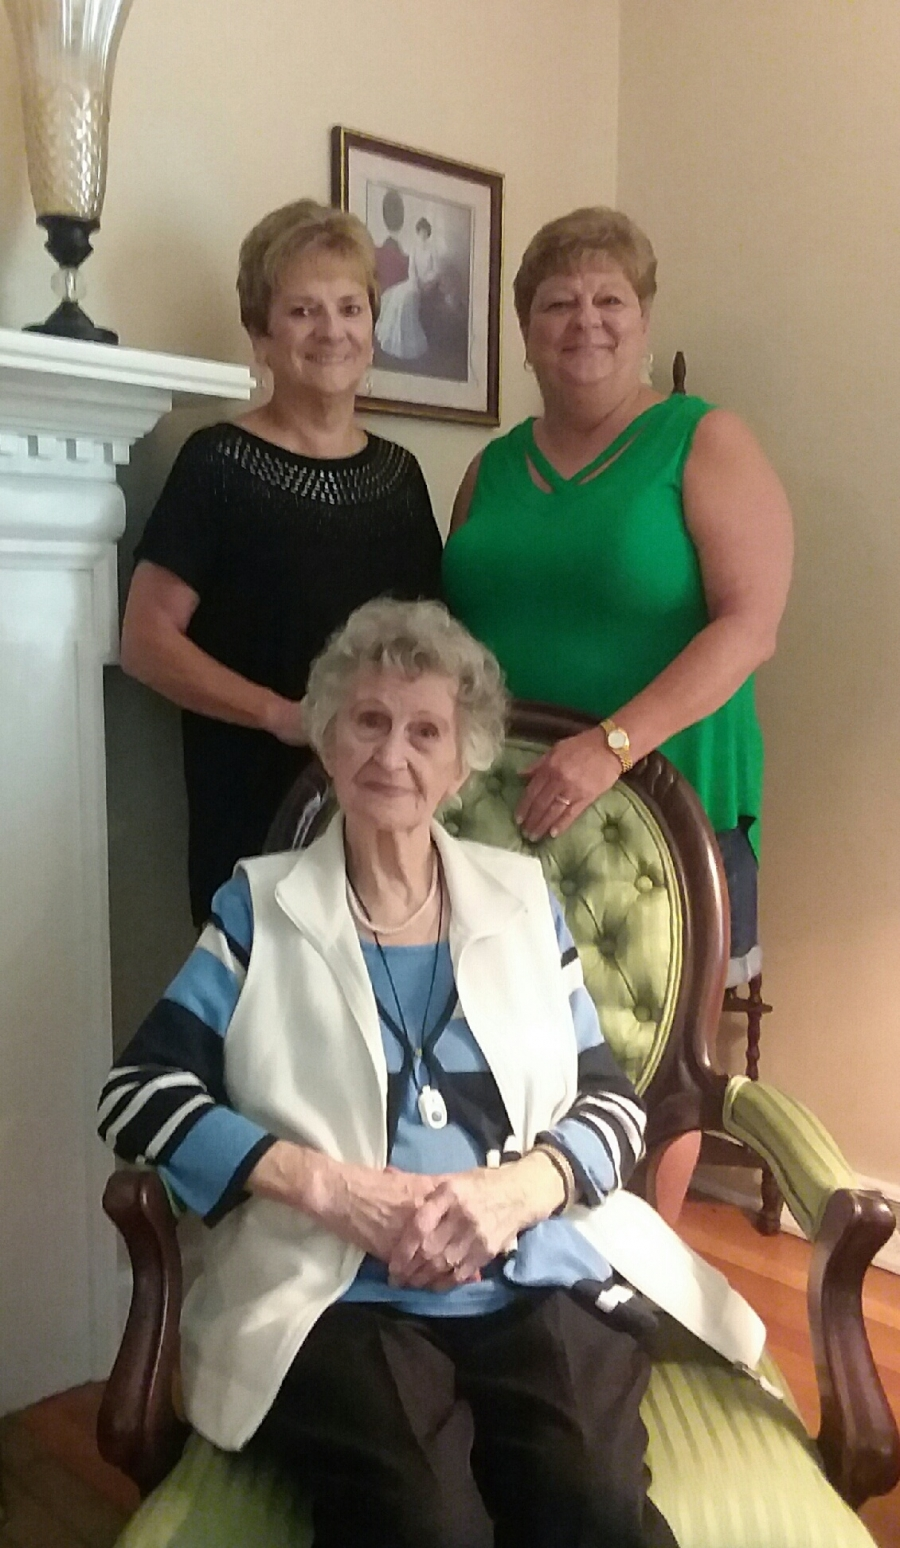 Willa Gibson Of Rockingham Celebrates 100th Birthday With Nieces Wanda Clark And Nancy Leviner